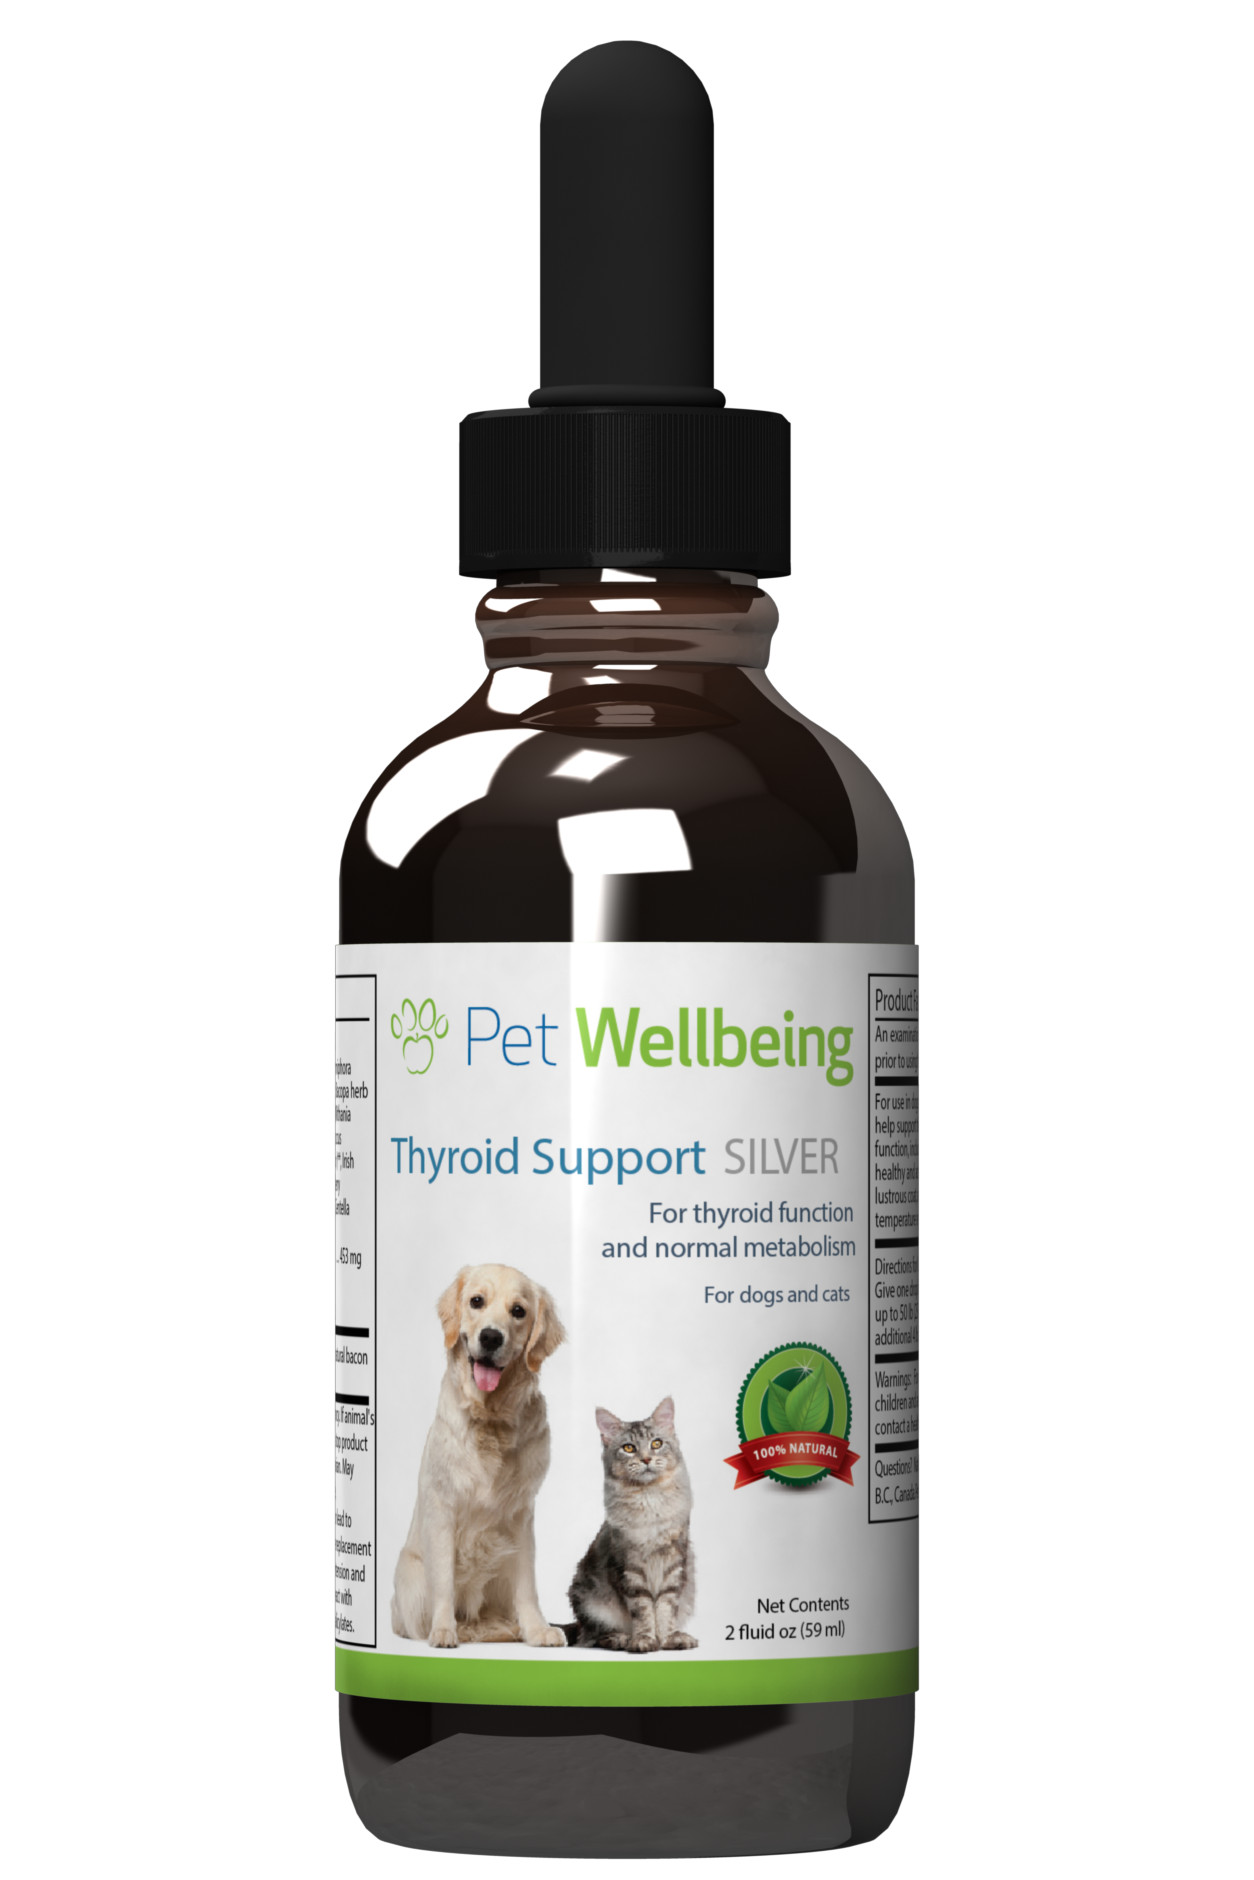 Thyroid Support Silver, 2oz, for Dogs & Cats